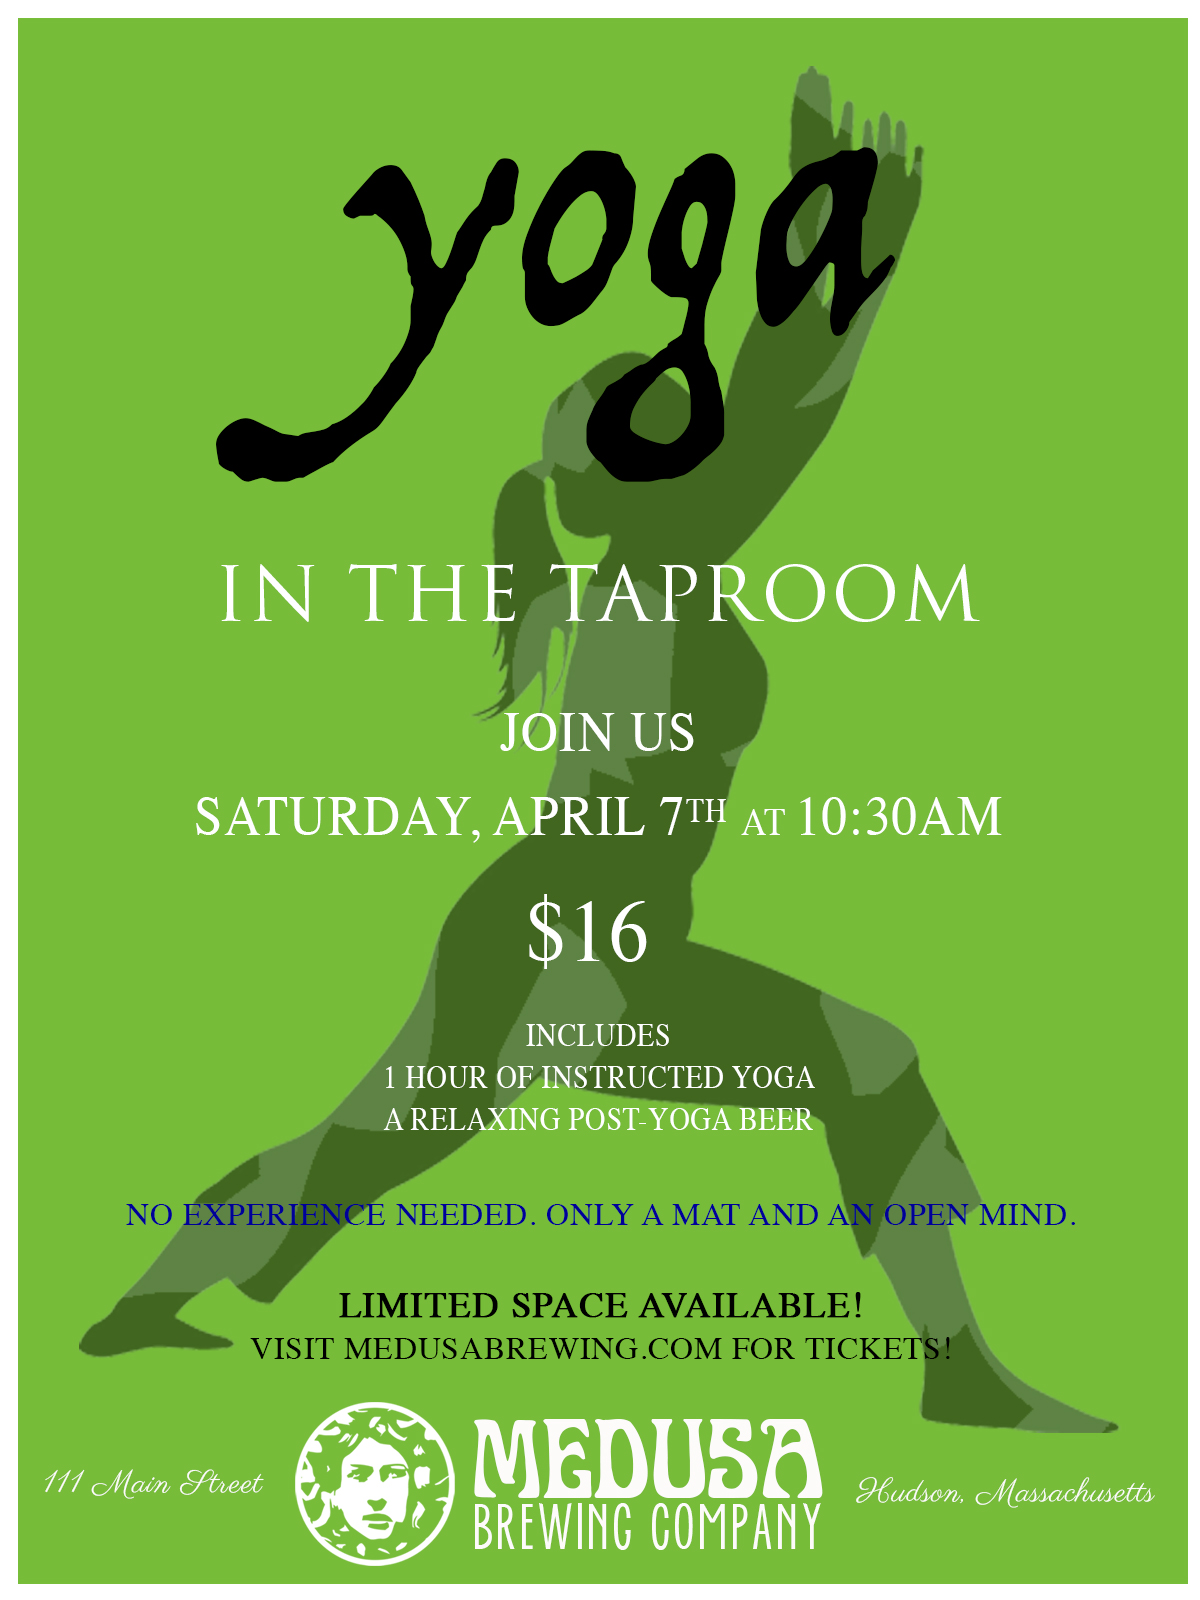 Yoga-in-the-Taproom-3-24.jpg